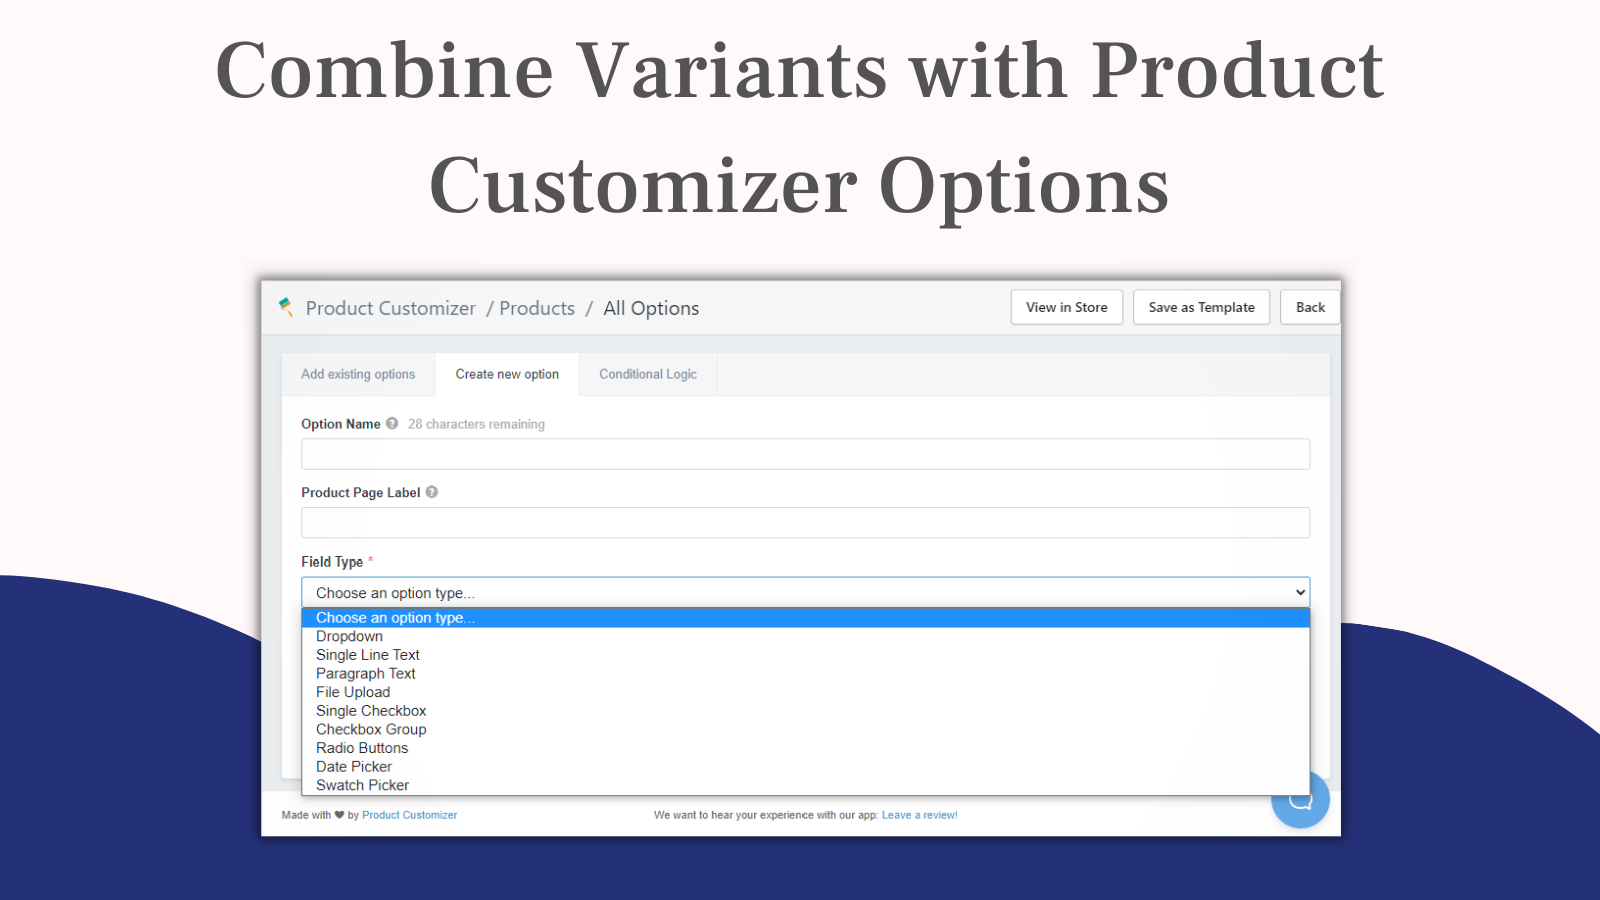 Combine variants with product customizer options